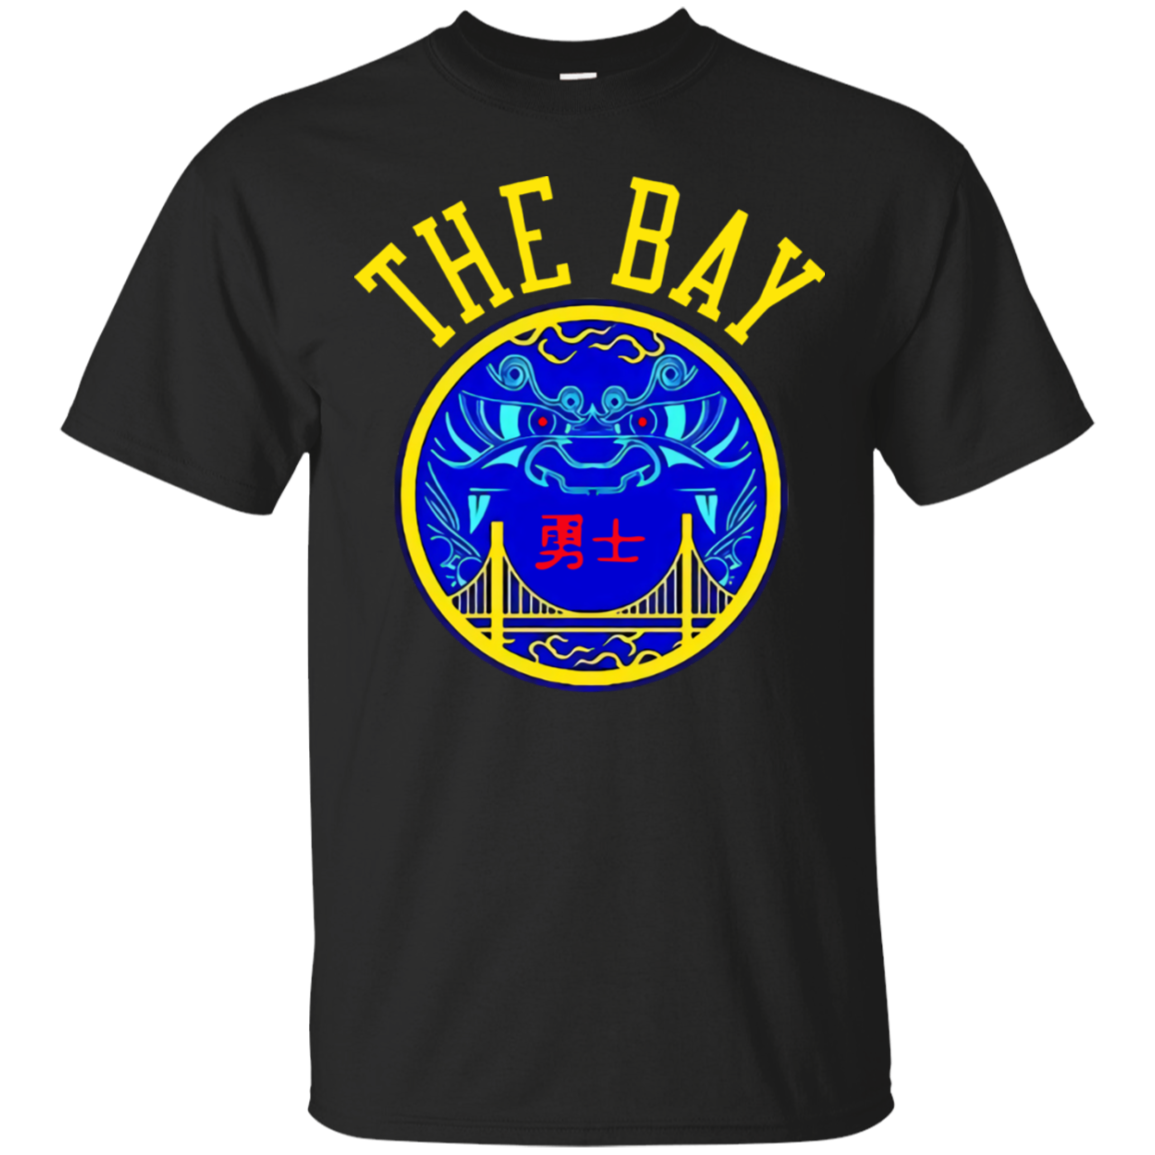 Golden_State_Warriors_The_Bay Golden State Warriors The Bay Chinese Heritage T Shirt Black Cotton Men M-3XL